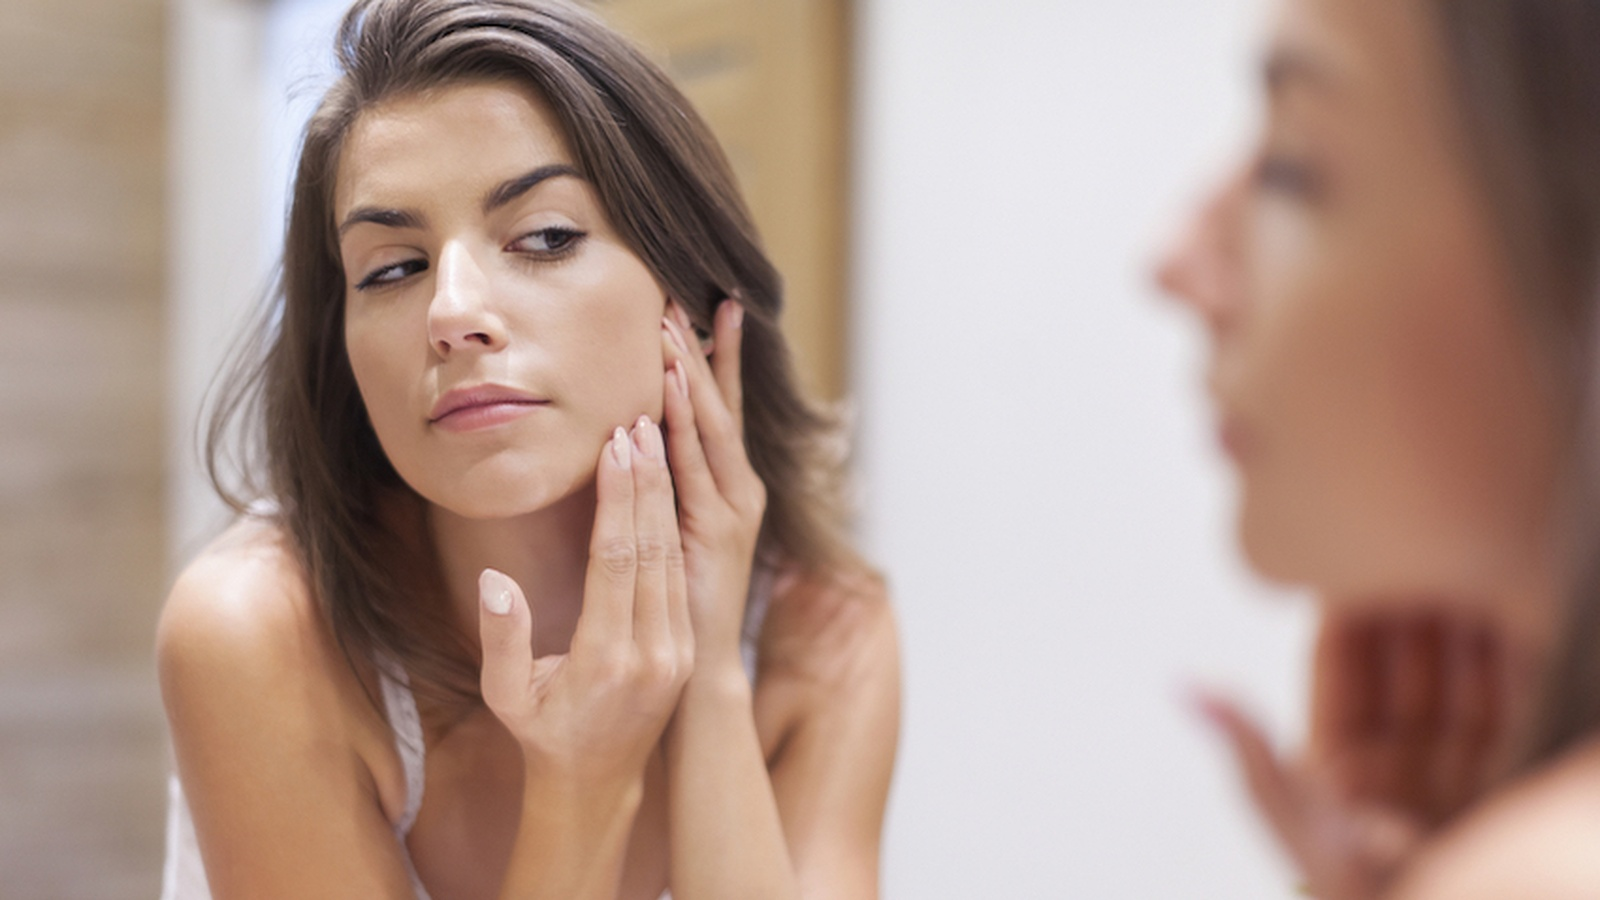 5 Unexpected Reasons Your Skin Could Be Breaking Out